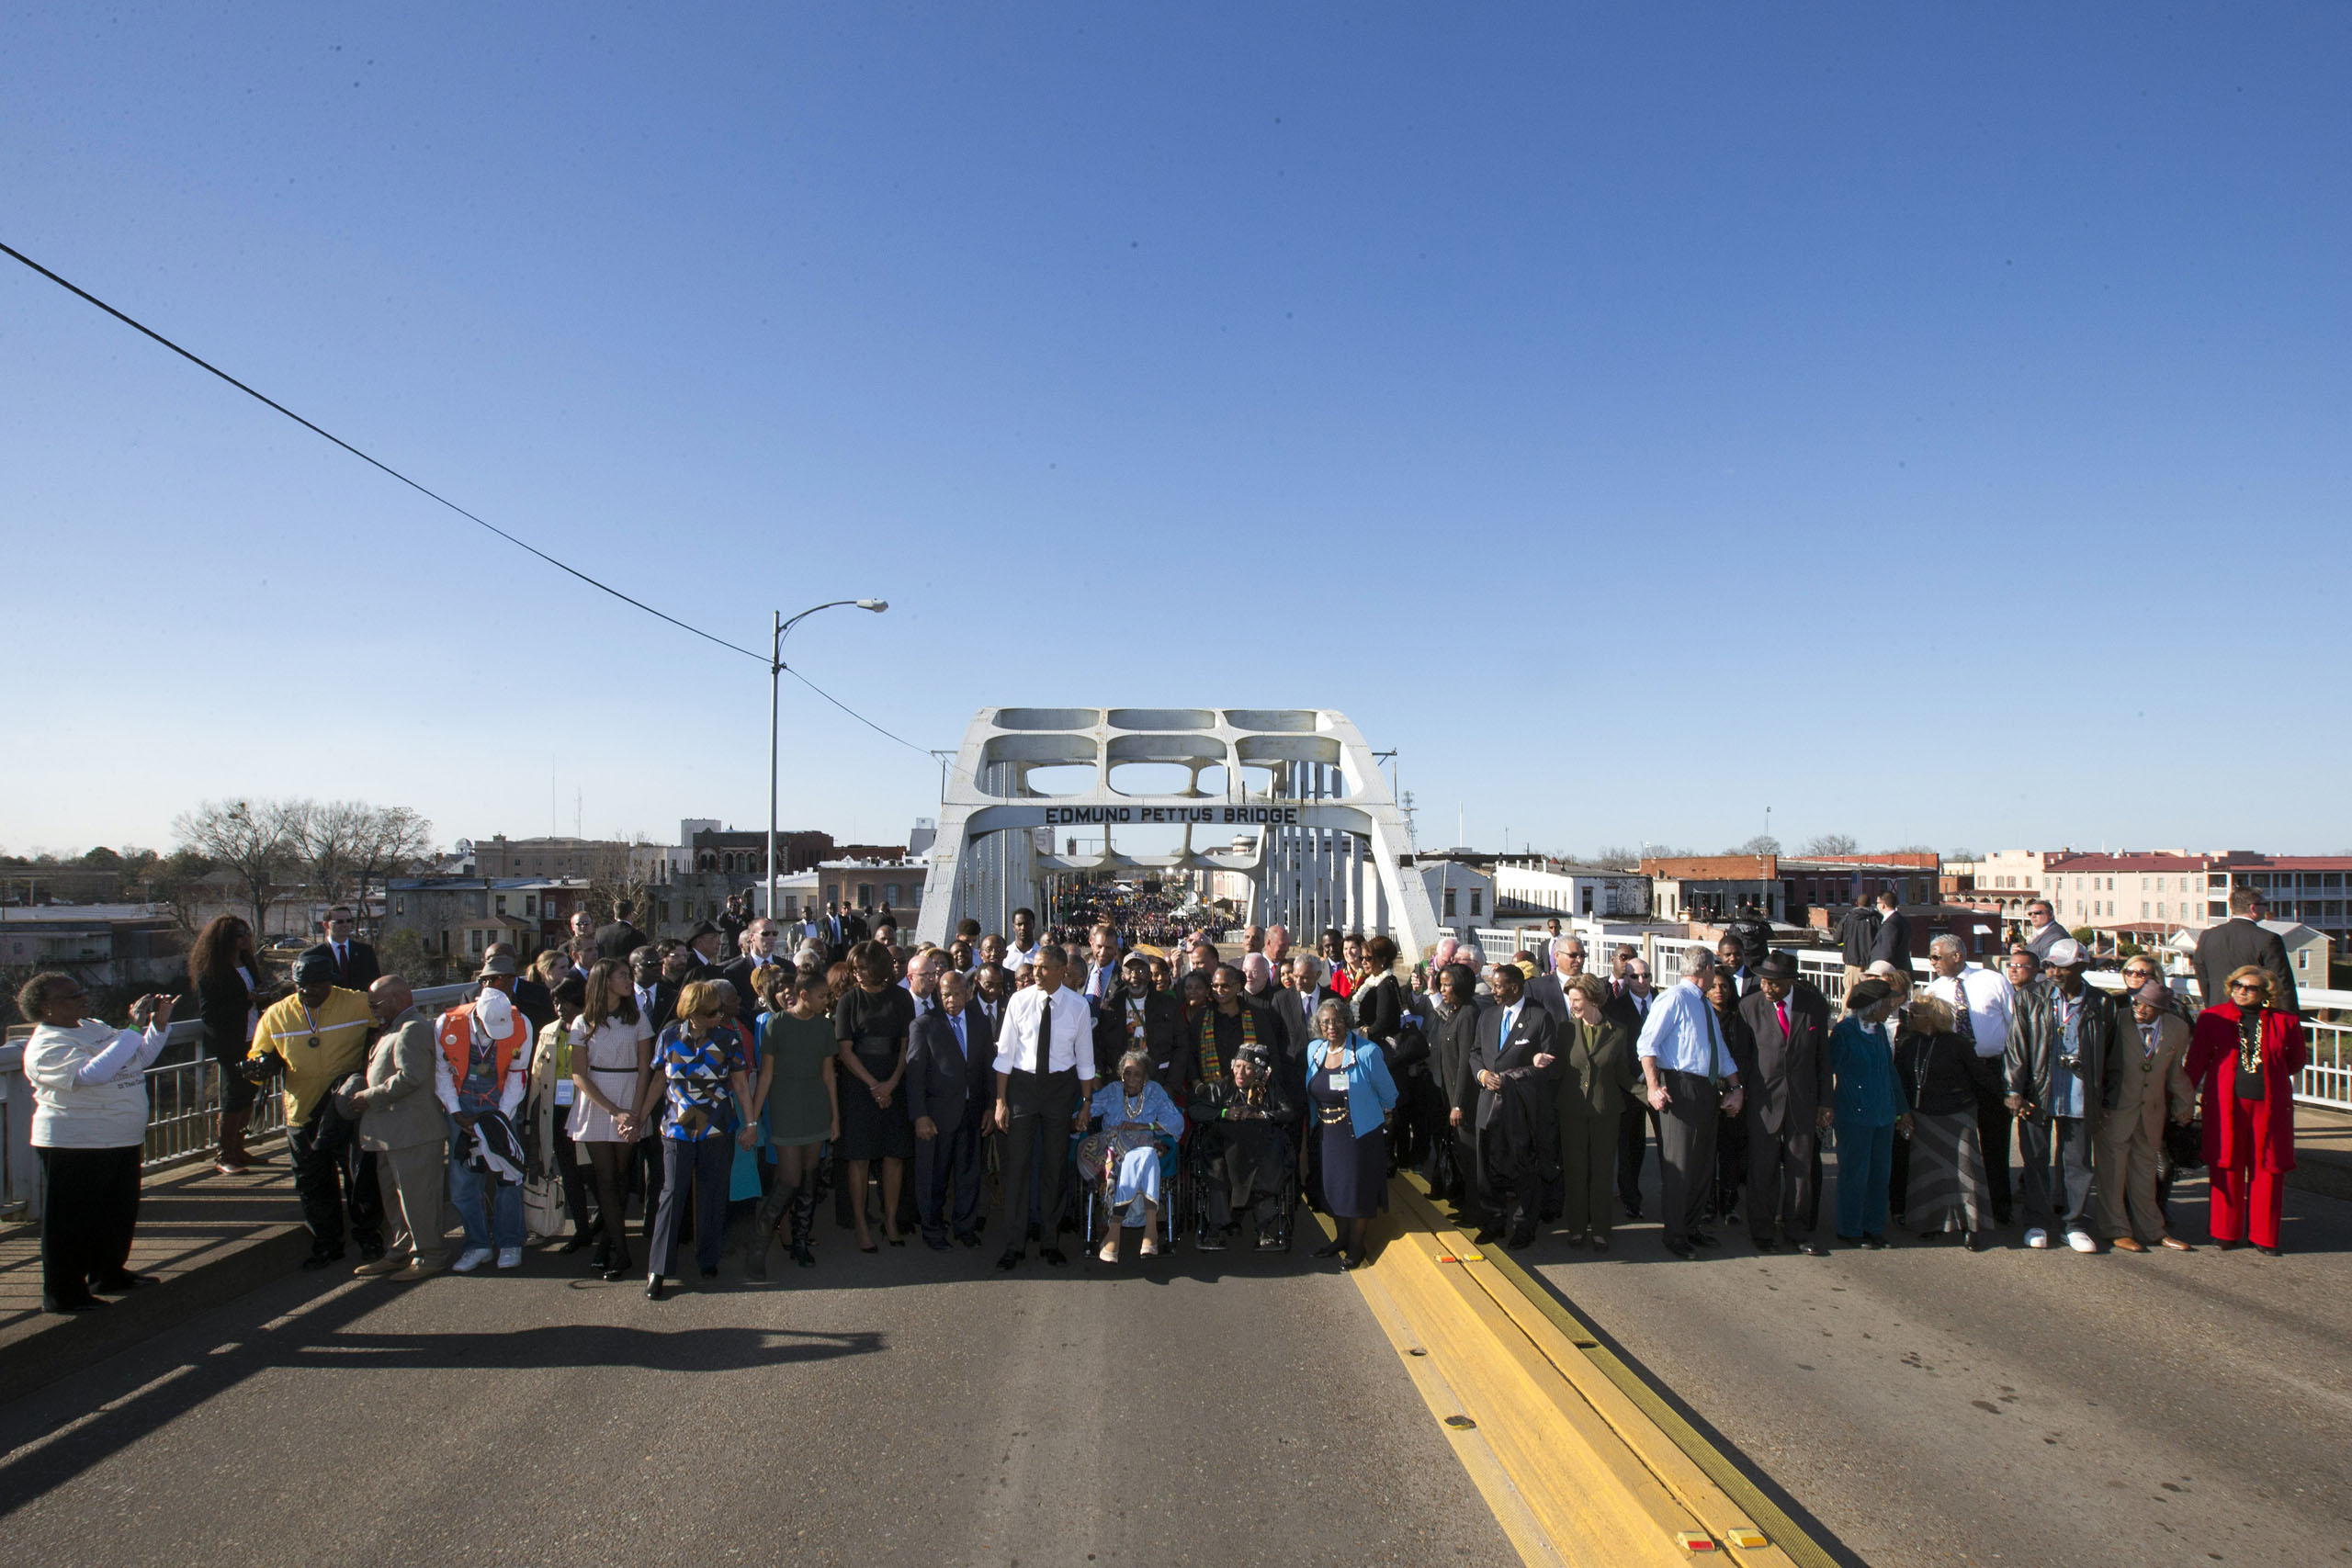 President Barack Obama, first lady Michelle Obama, their daughters Malia and Sasha, as well as members of Congress and civil rights leaders make a symbolic walk across the Edmund Pettus Bridge in Selma, Ala. on March 7, 2015.